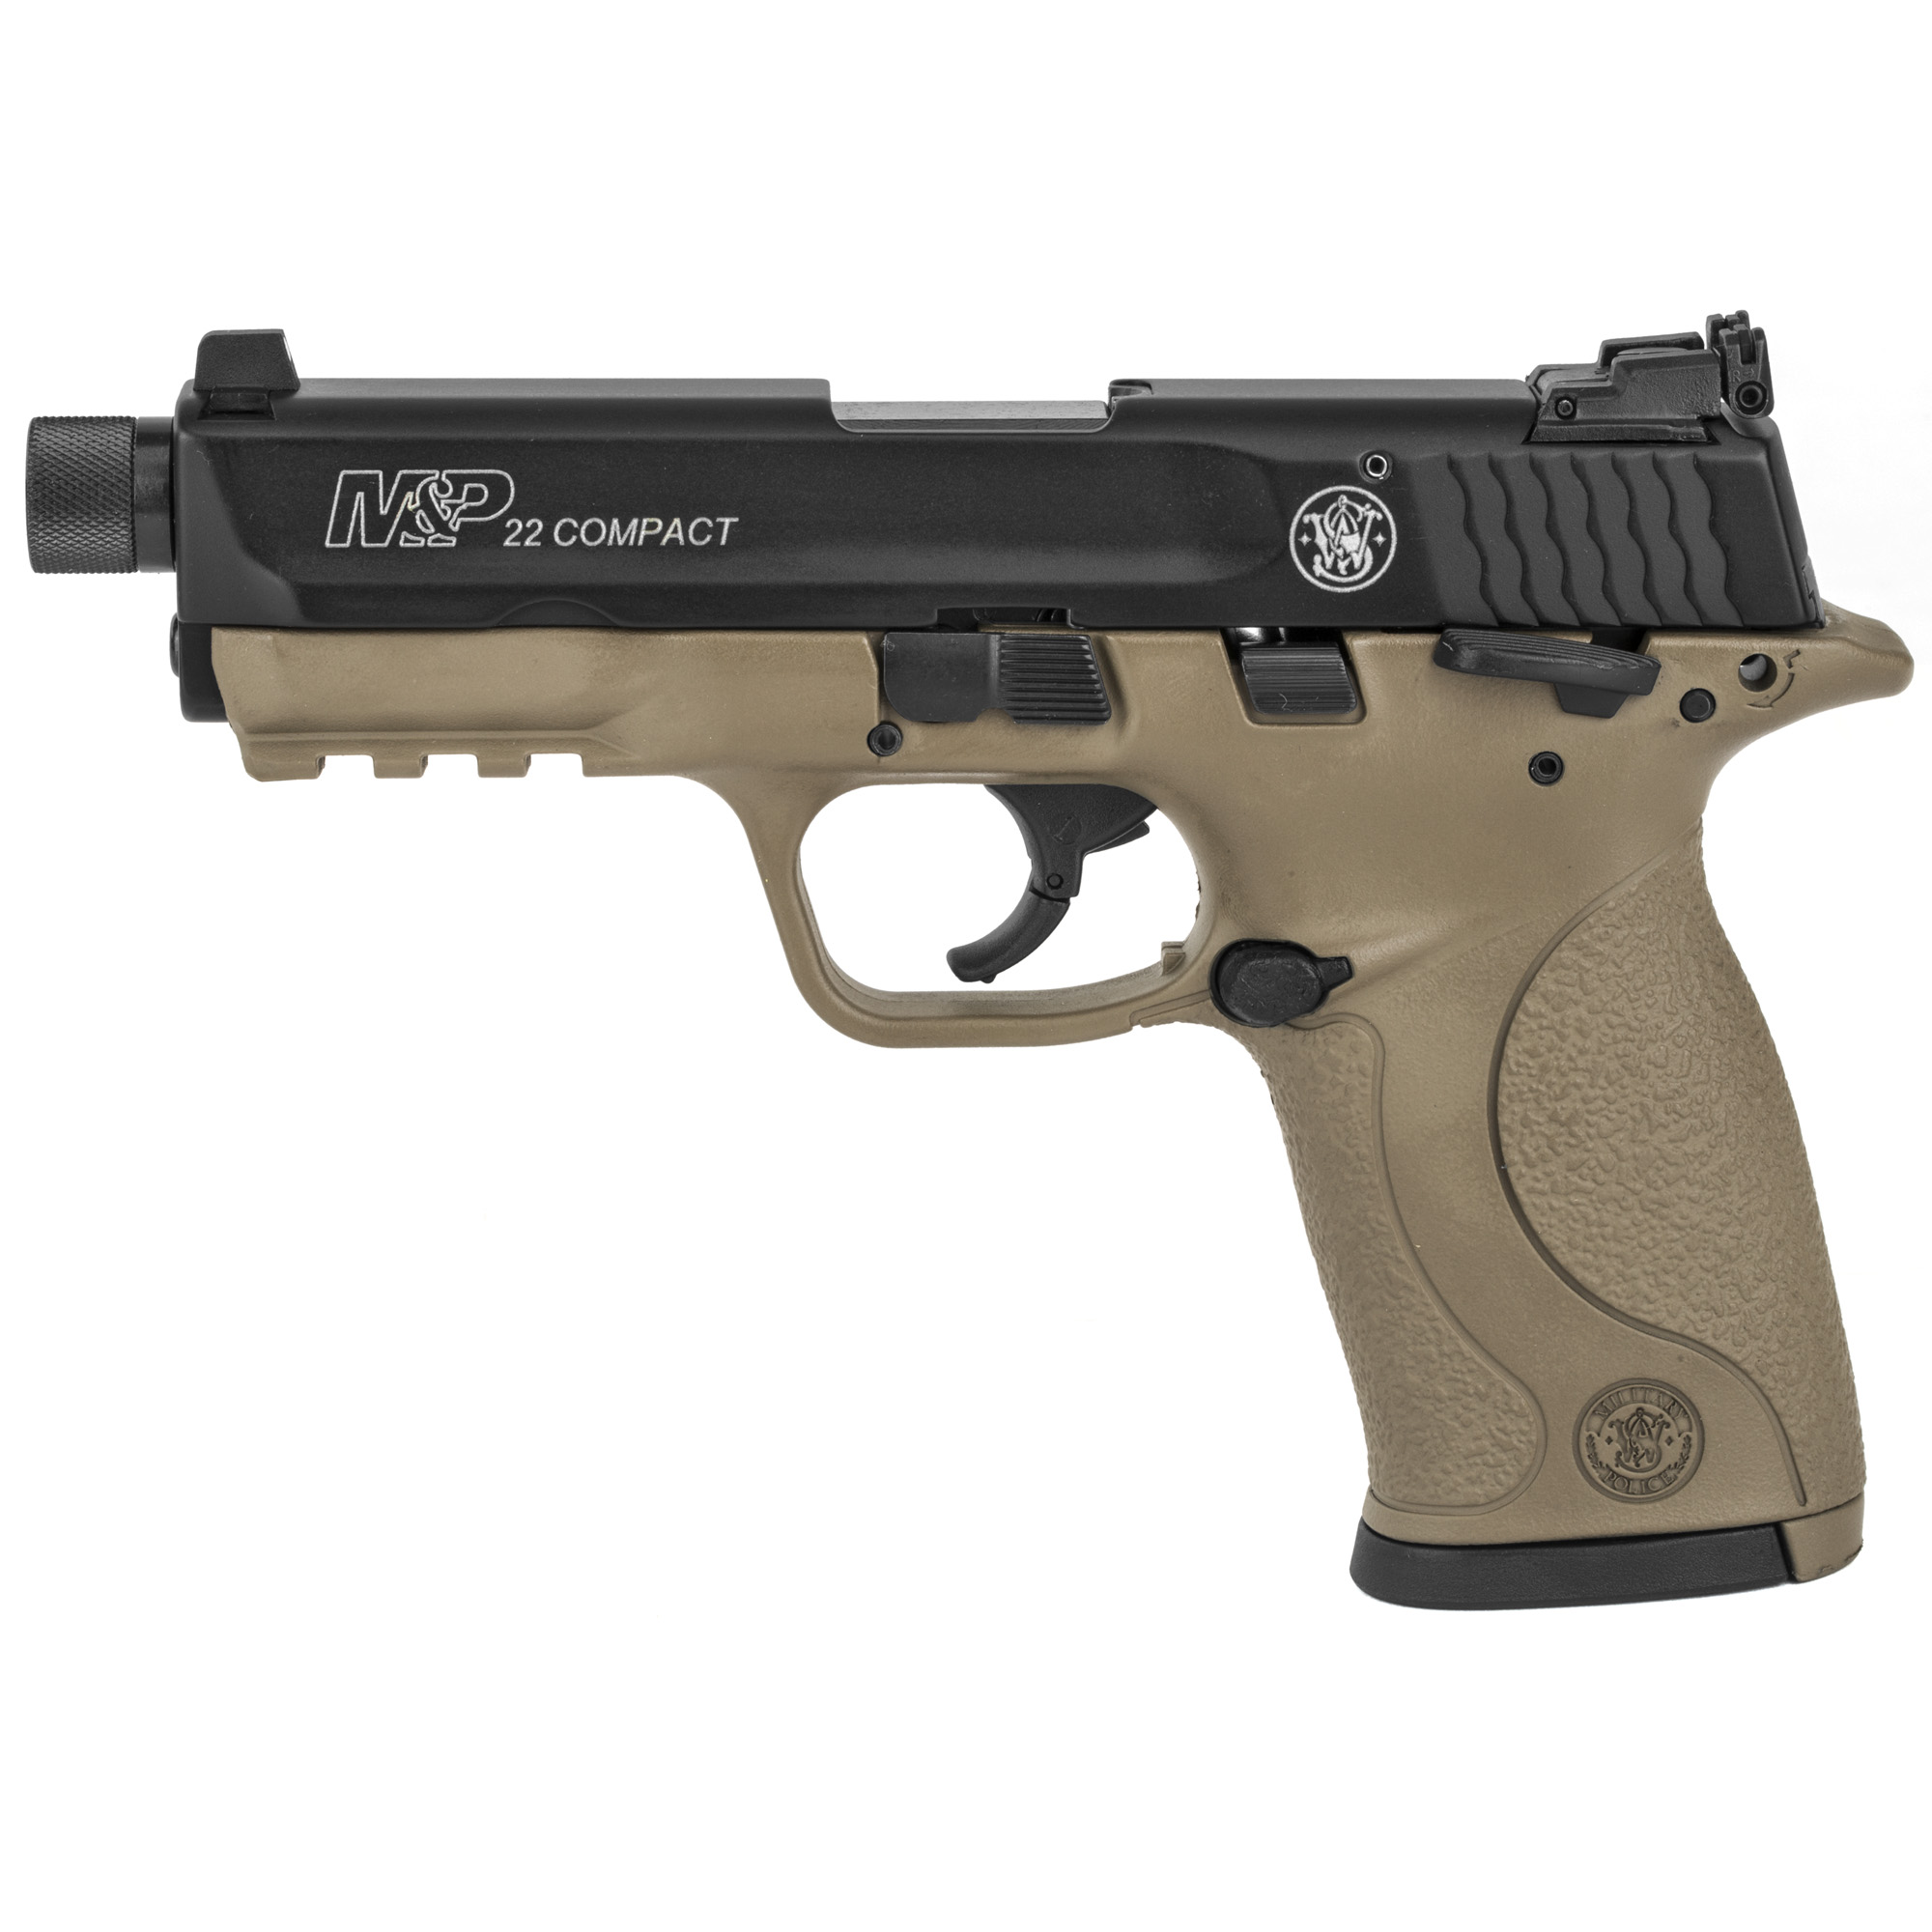 "Precision built to be the most accurate and reliable firearms"" M&P pistols are an experience you have to feel to believe. Durable and comfortable"" they are capable of handling as many rounds as you are. Engineered with an attention to detail and superior ergonomics"" M&P22 pistols connect the shooter with the shot. Ideally suited for training or target shooting"" this semi-automatic compact pistol maintains standard M&P pistol design features and includes a few extras. Two magazines are included."